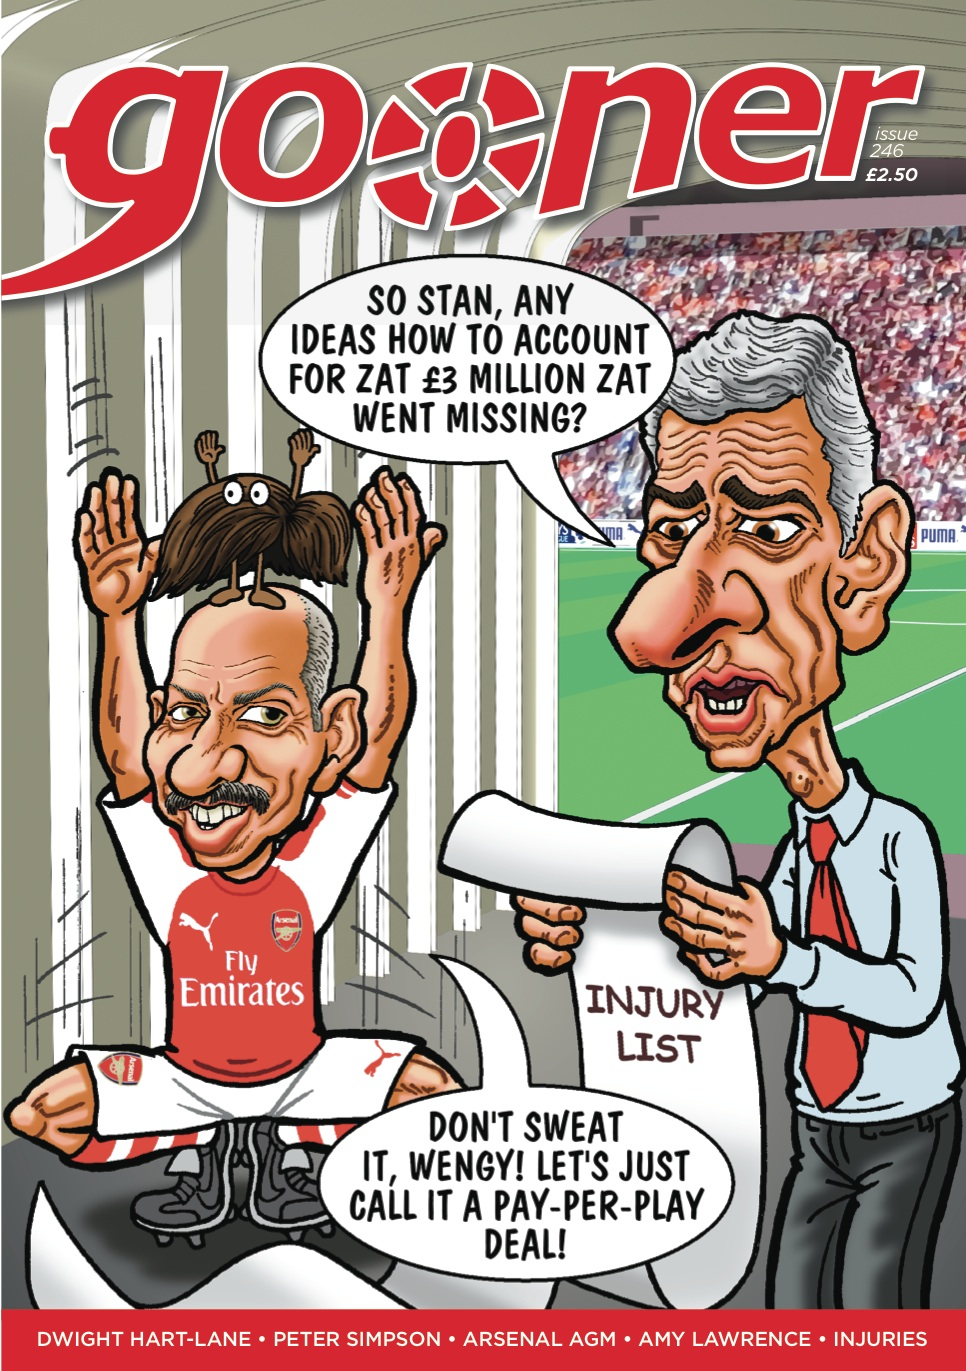 The Gooner - Issue 246